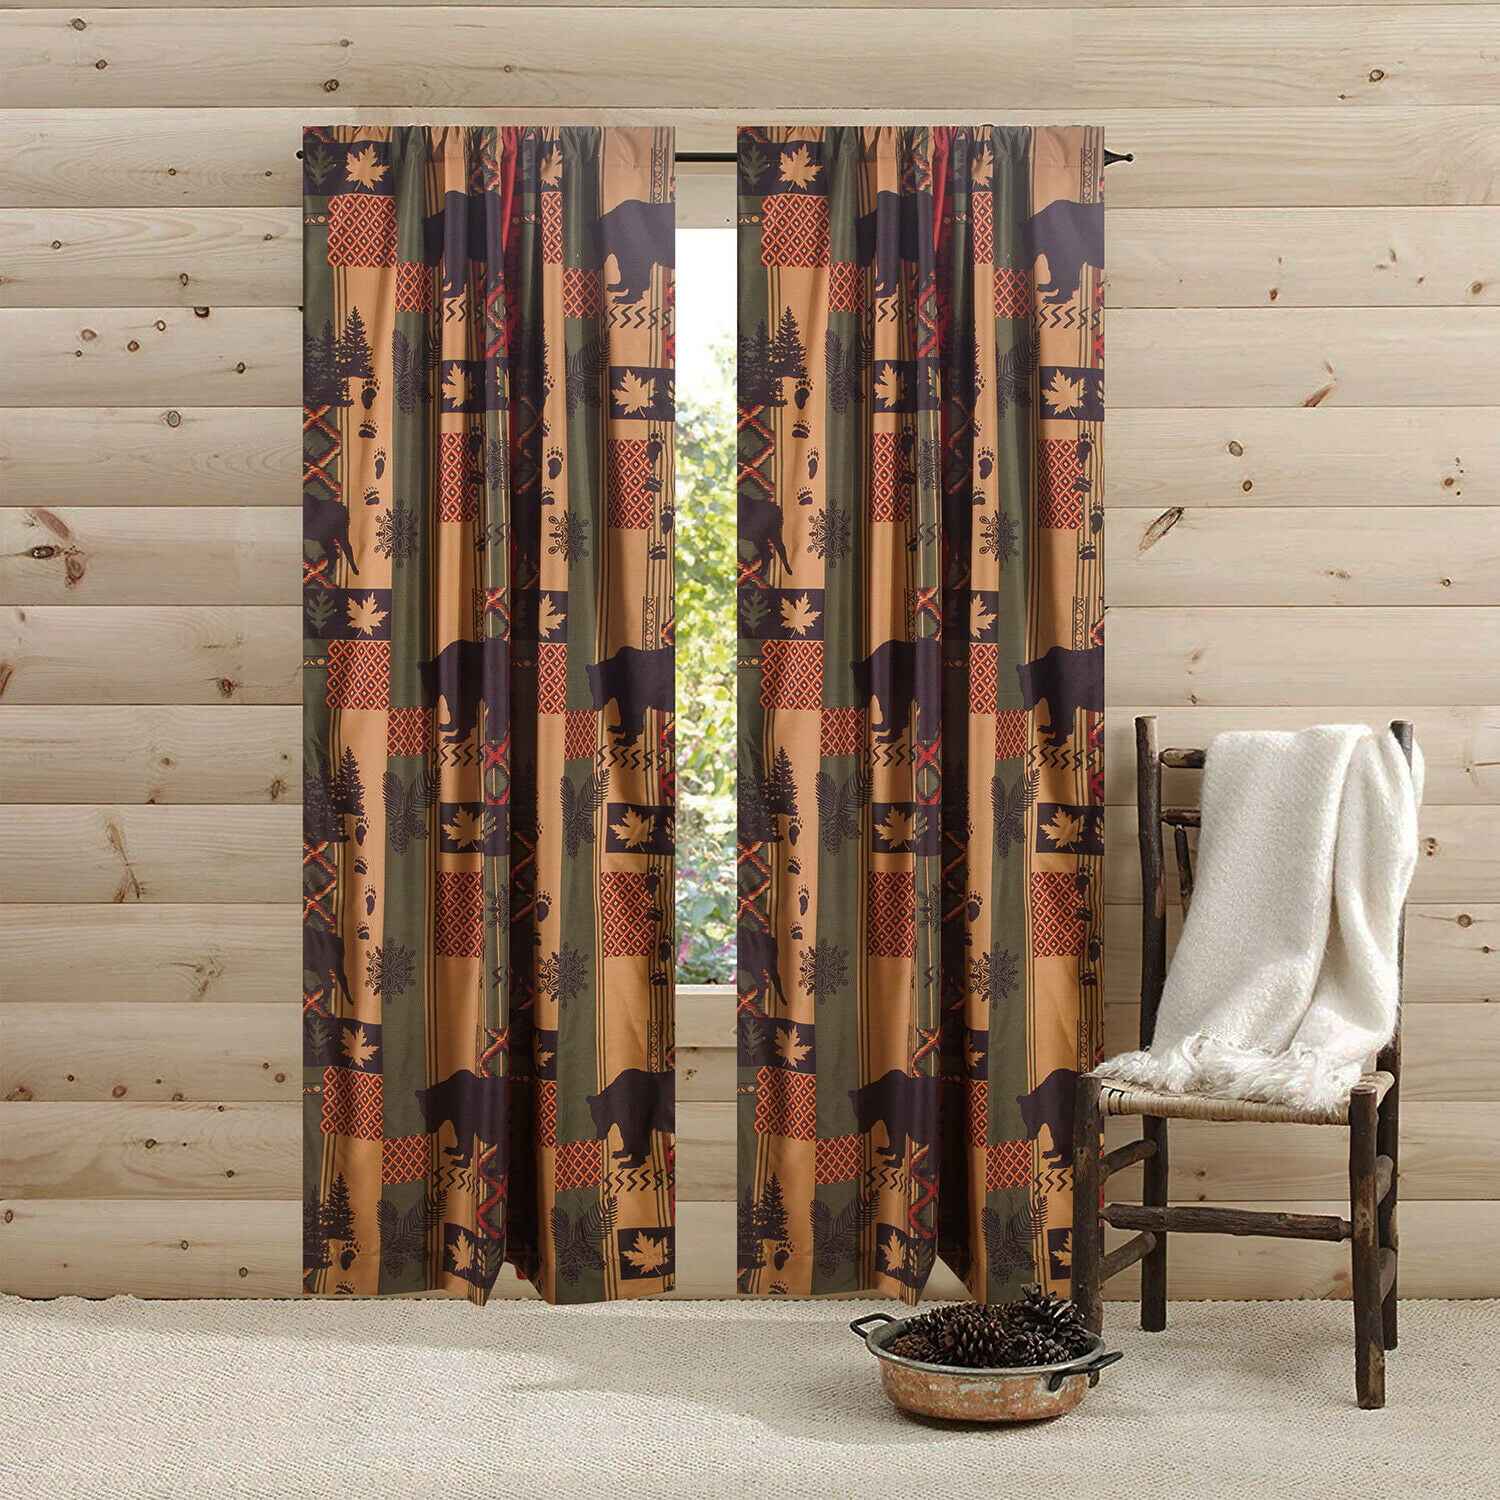 84 In Southwest Rustic Bear Cabin Lodge 2 Panel Pair Window Curtains Rod Pocket Drapes For Bedroom And Living Room Brown Green Red Walmart Com Walmart Com